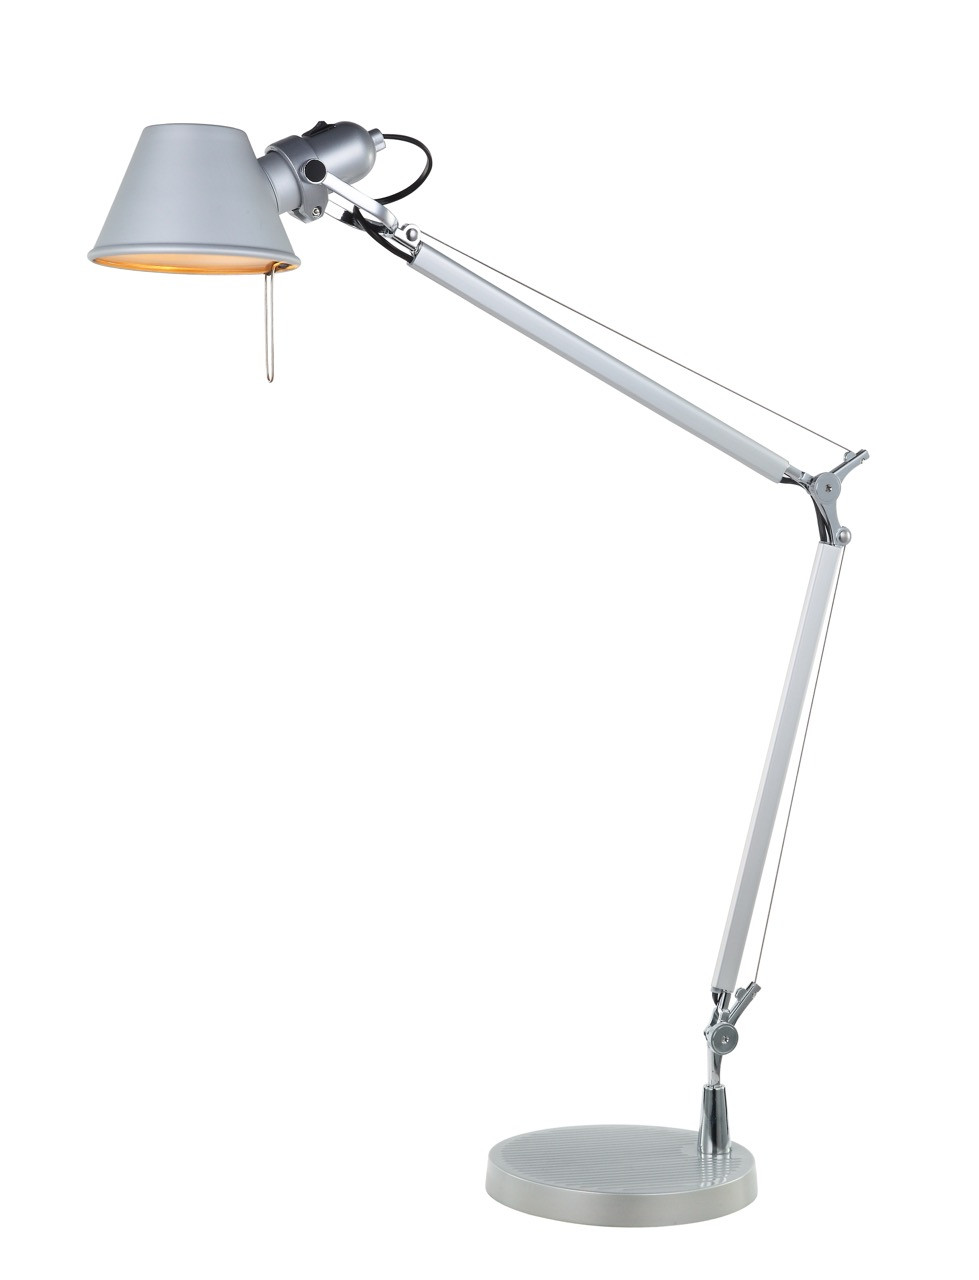 Lampara De Escritorio Led Contemporáneo Prar Lámpara De Mesa Tipo Metalarte Con Articulaciones Of Lampara De Escritorio Led Brillante D Daylight Lámpara De Escritorio De Led Foldi